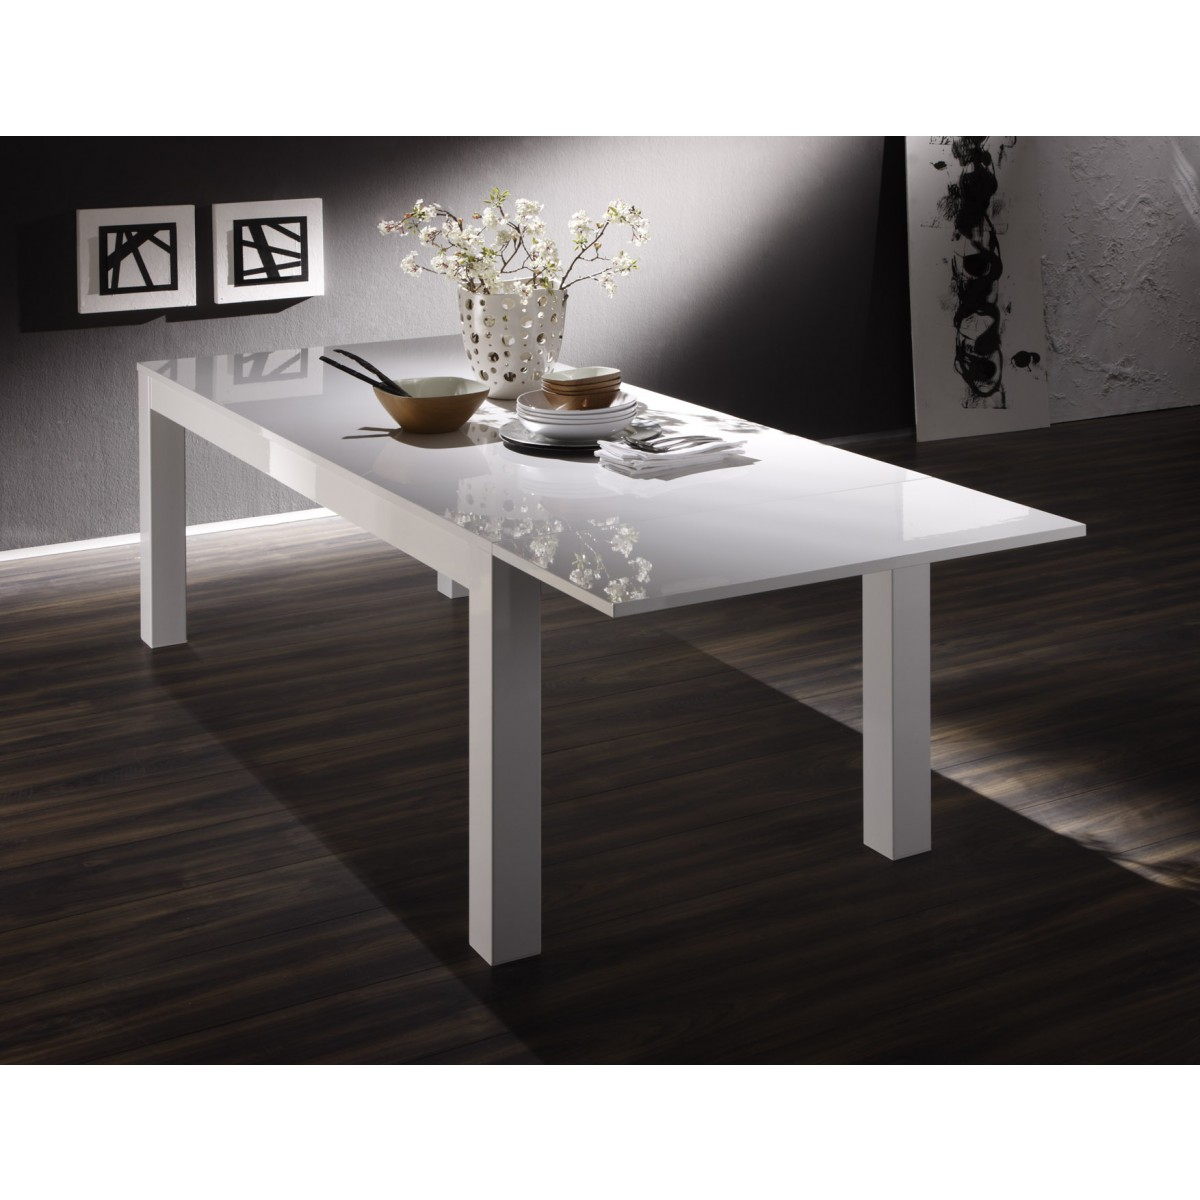 Table laquee blanche rectangulaire avec allonge 160 cm amalfi mooviin for Table laque 8 places